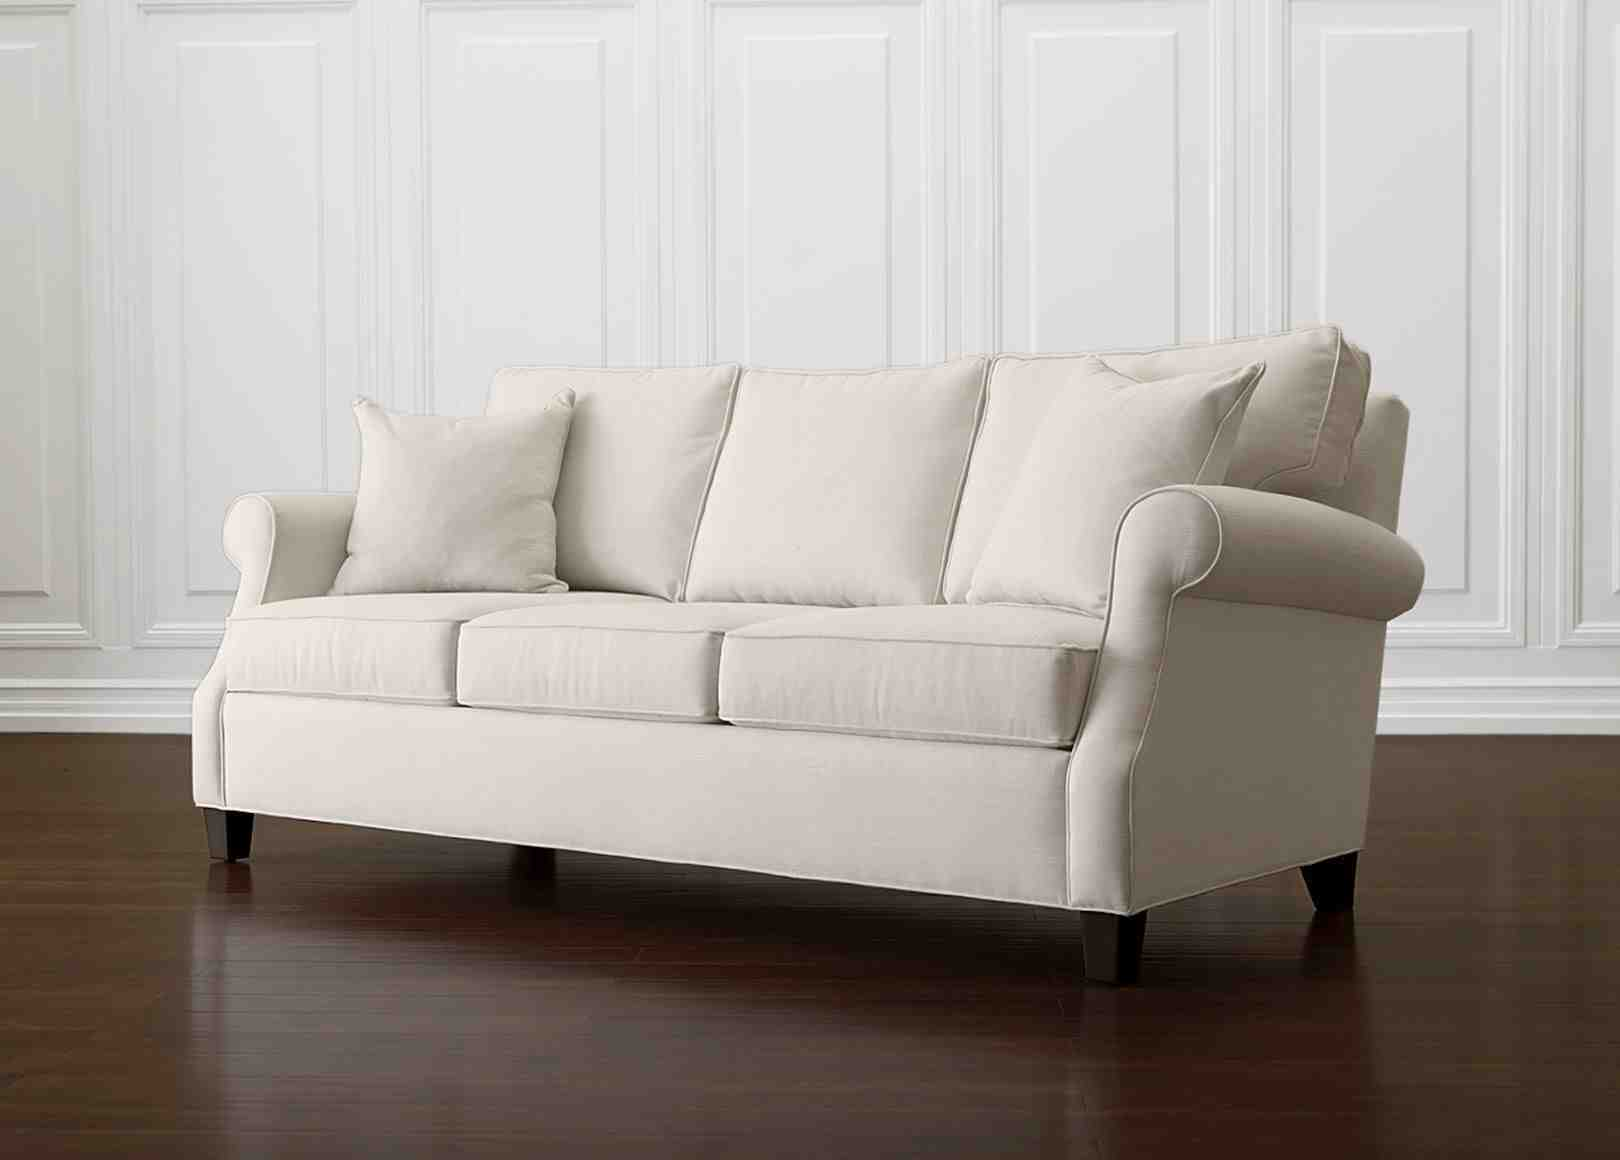 Sale On Sofas